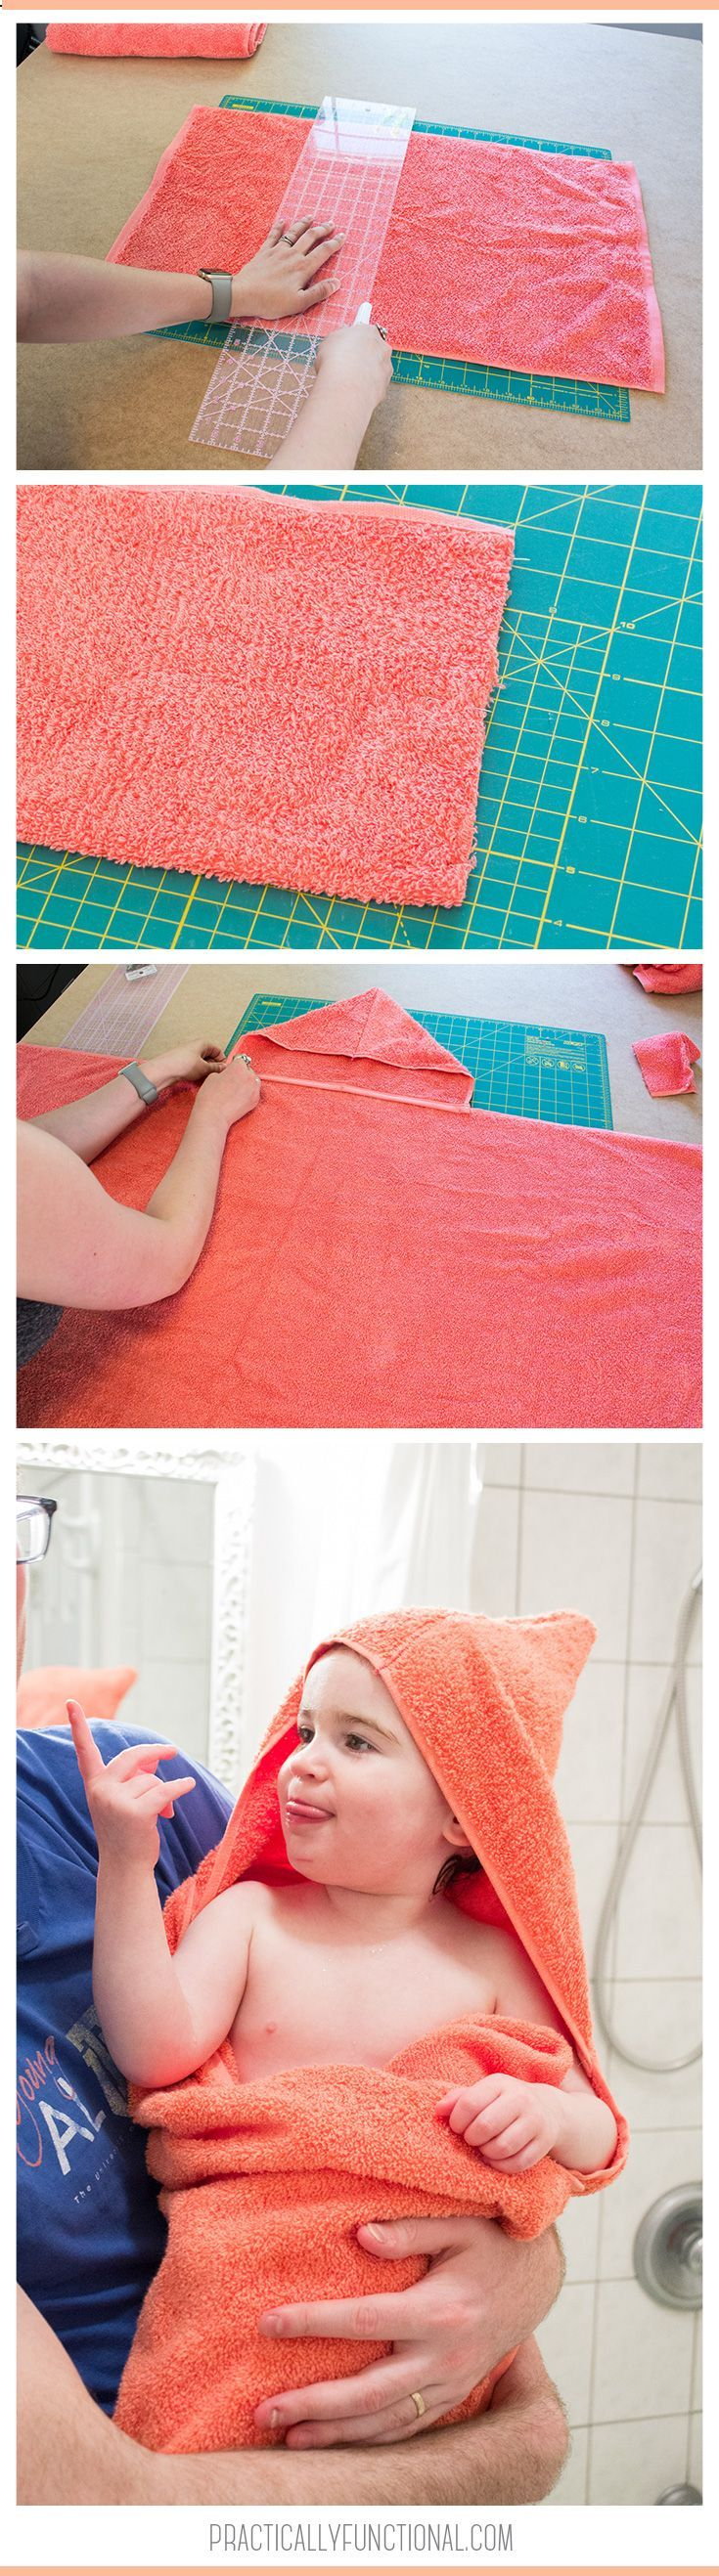 This is the easiest DIY hooded towel tutorial ever! All you need is a bath towel, a hand towel, and to sew 2 straight lines of stitches!